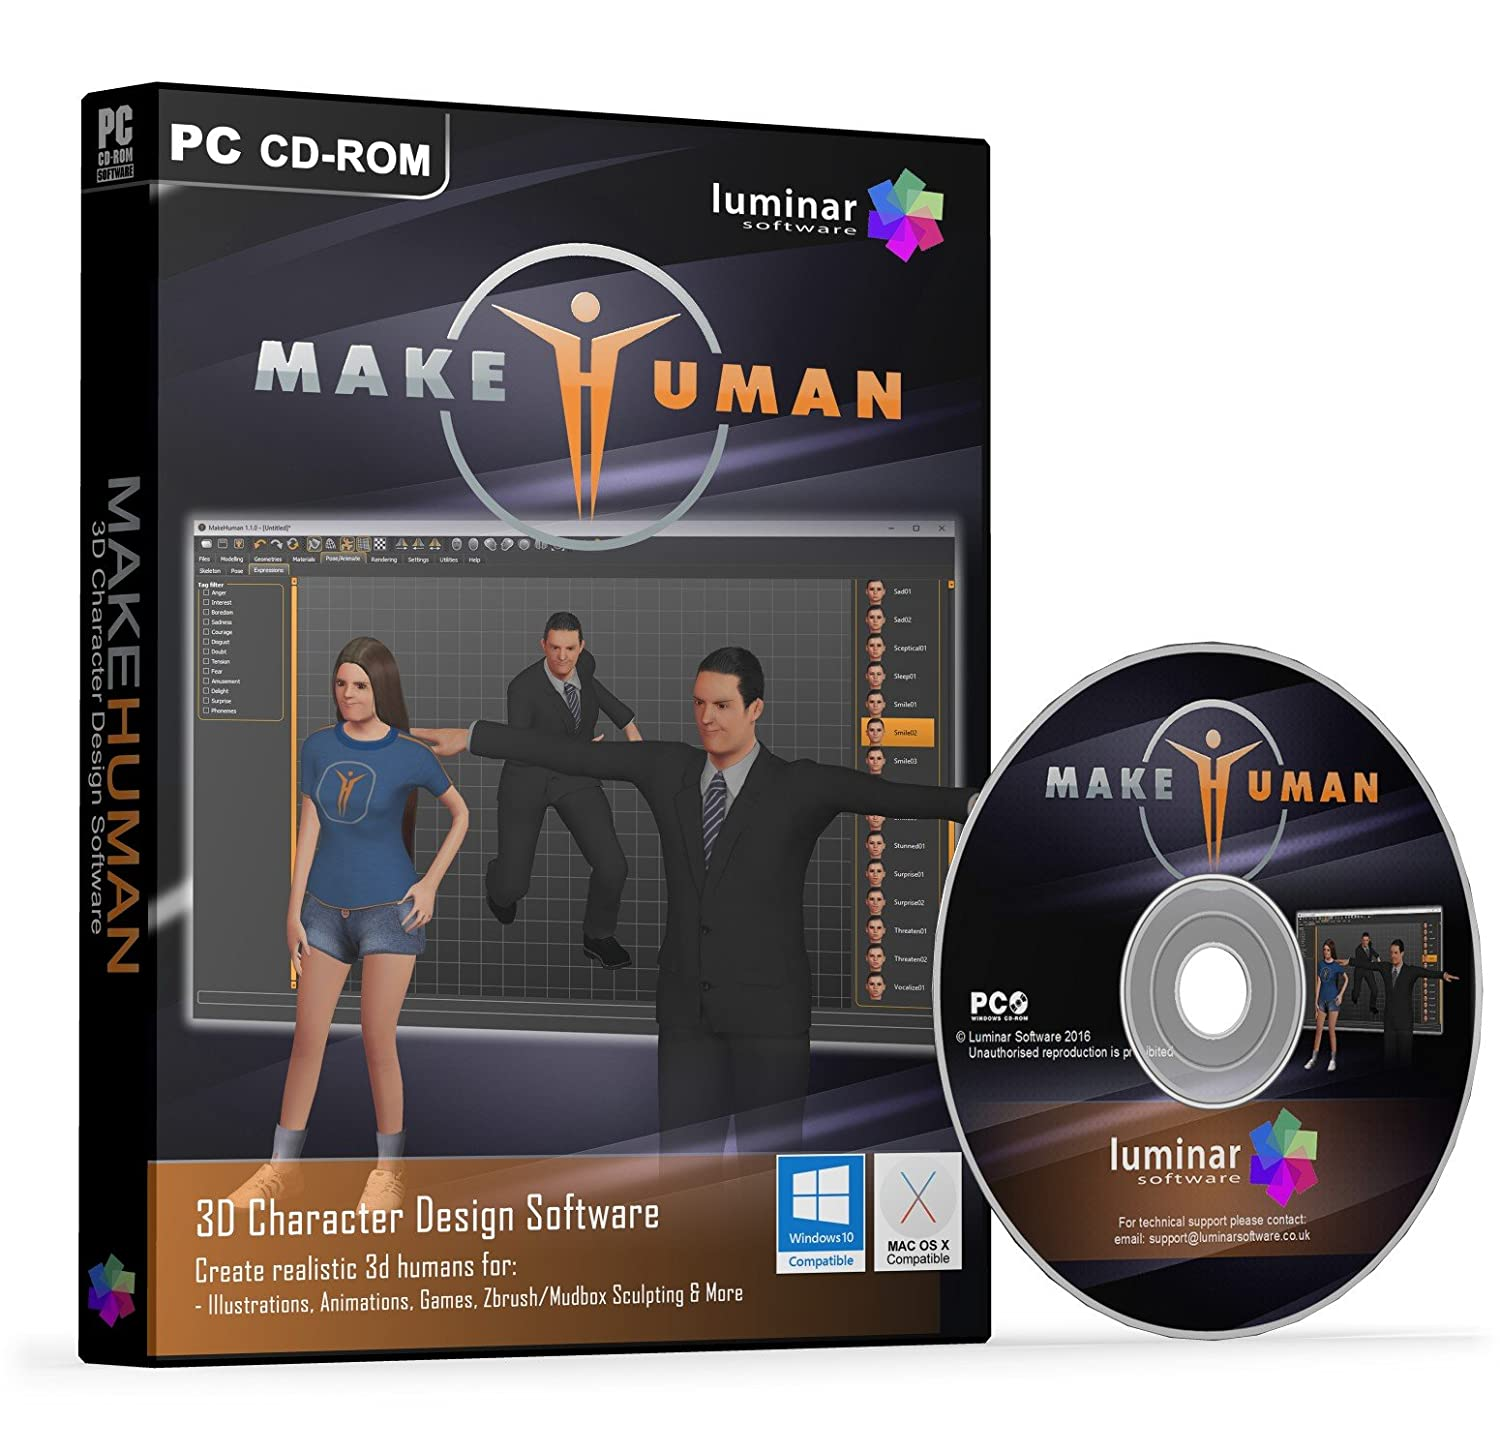 MakeHuman - Powerful 3D Human Modelling Software (PC & Mac) - BOXED AS SHOWN